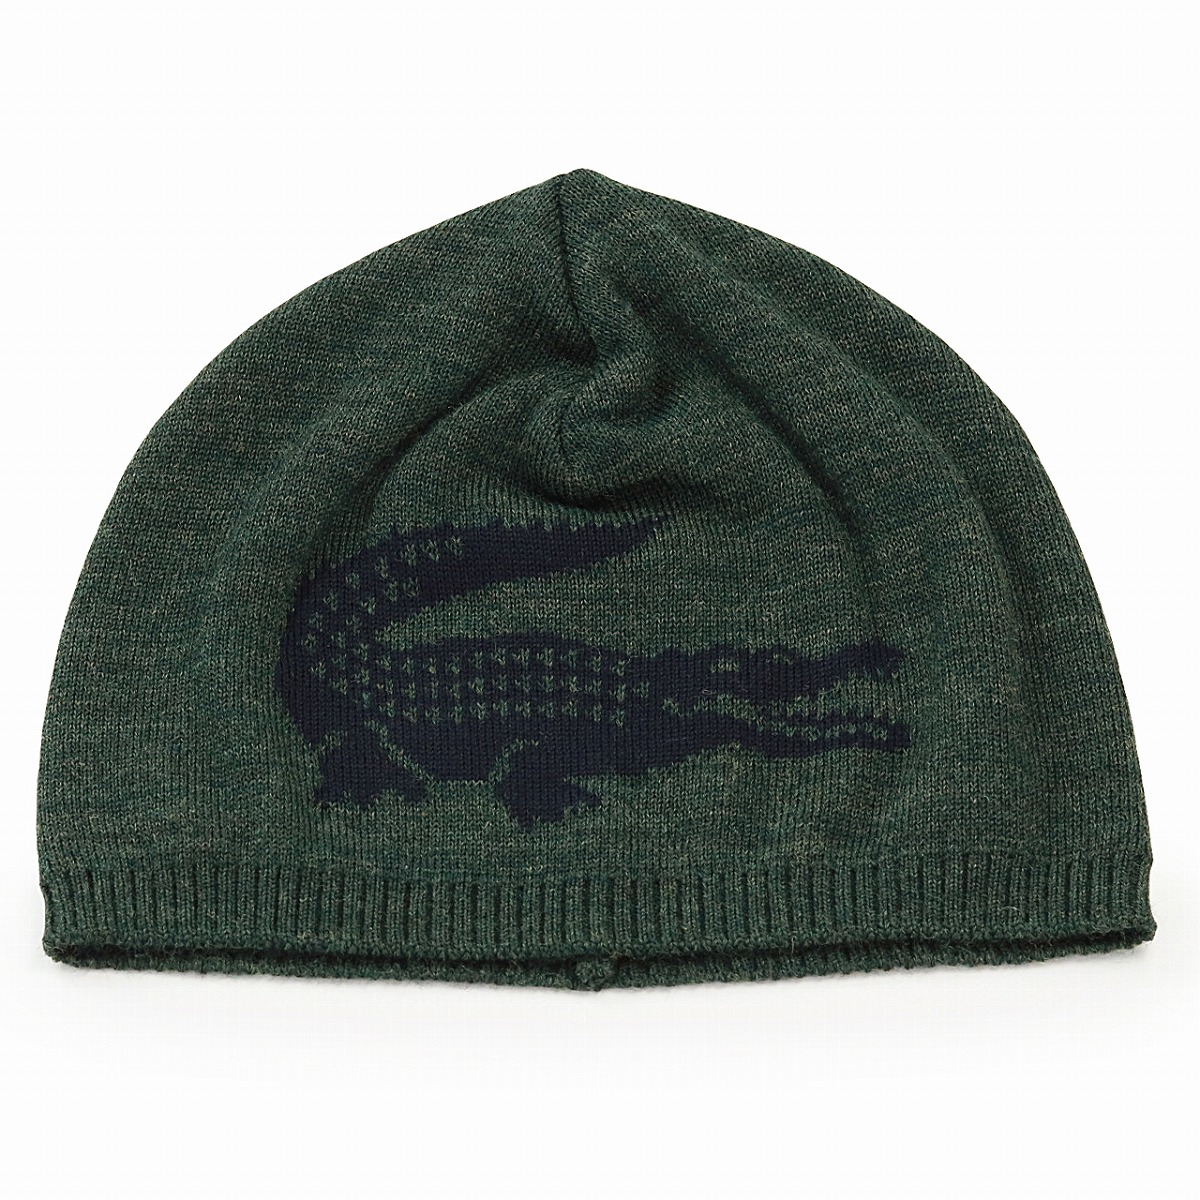 0c604e5afa5 ビーニーカジュアルレディースニットワッチウール 100% unisex knit hat crocodile mark fall and winter  Pau tea gentleman casual clothes brand sports   green ...